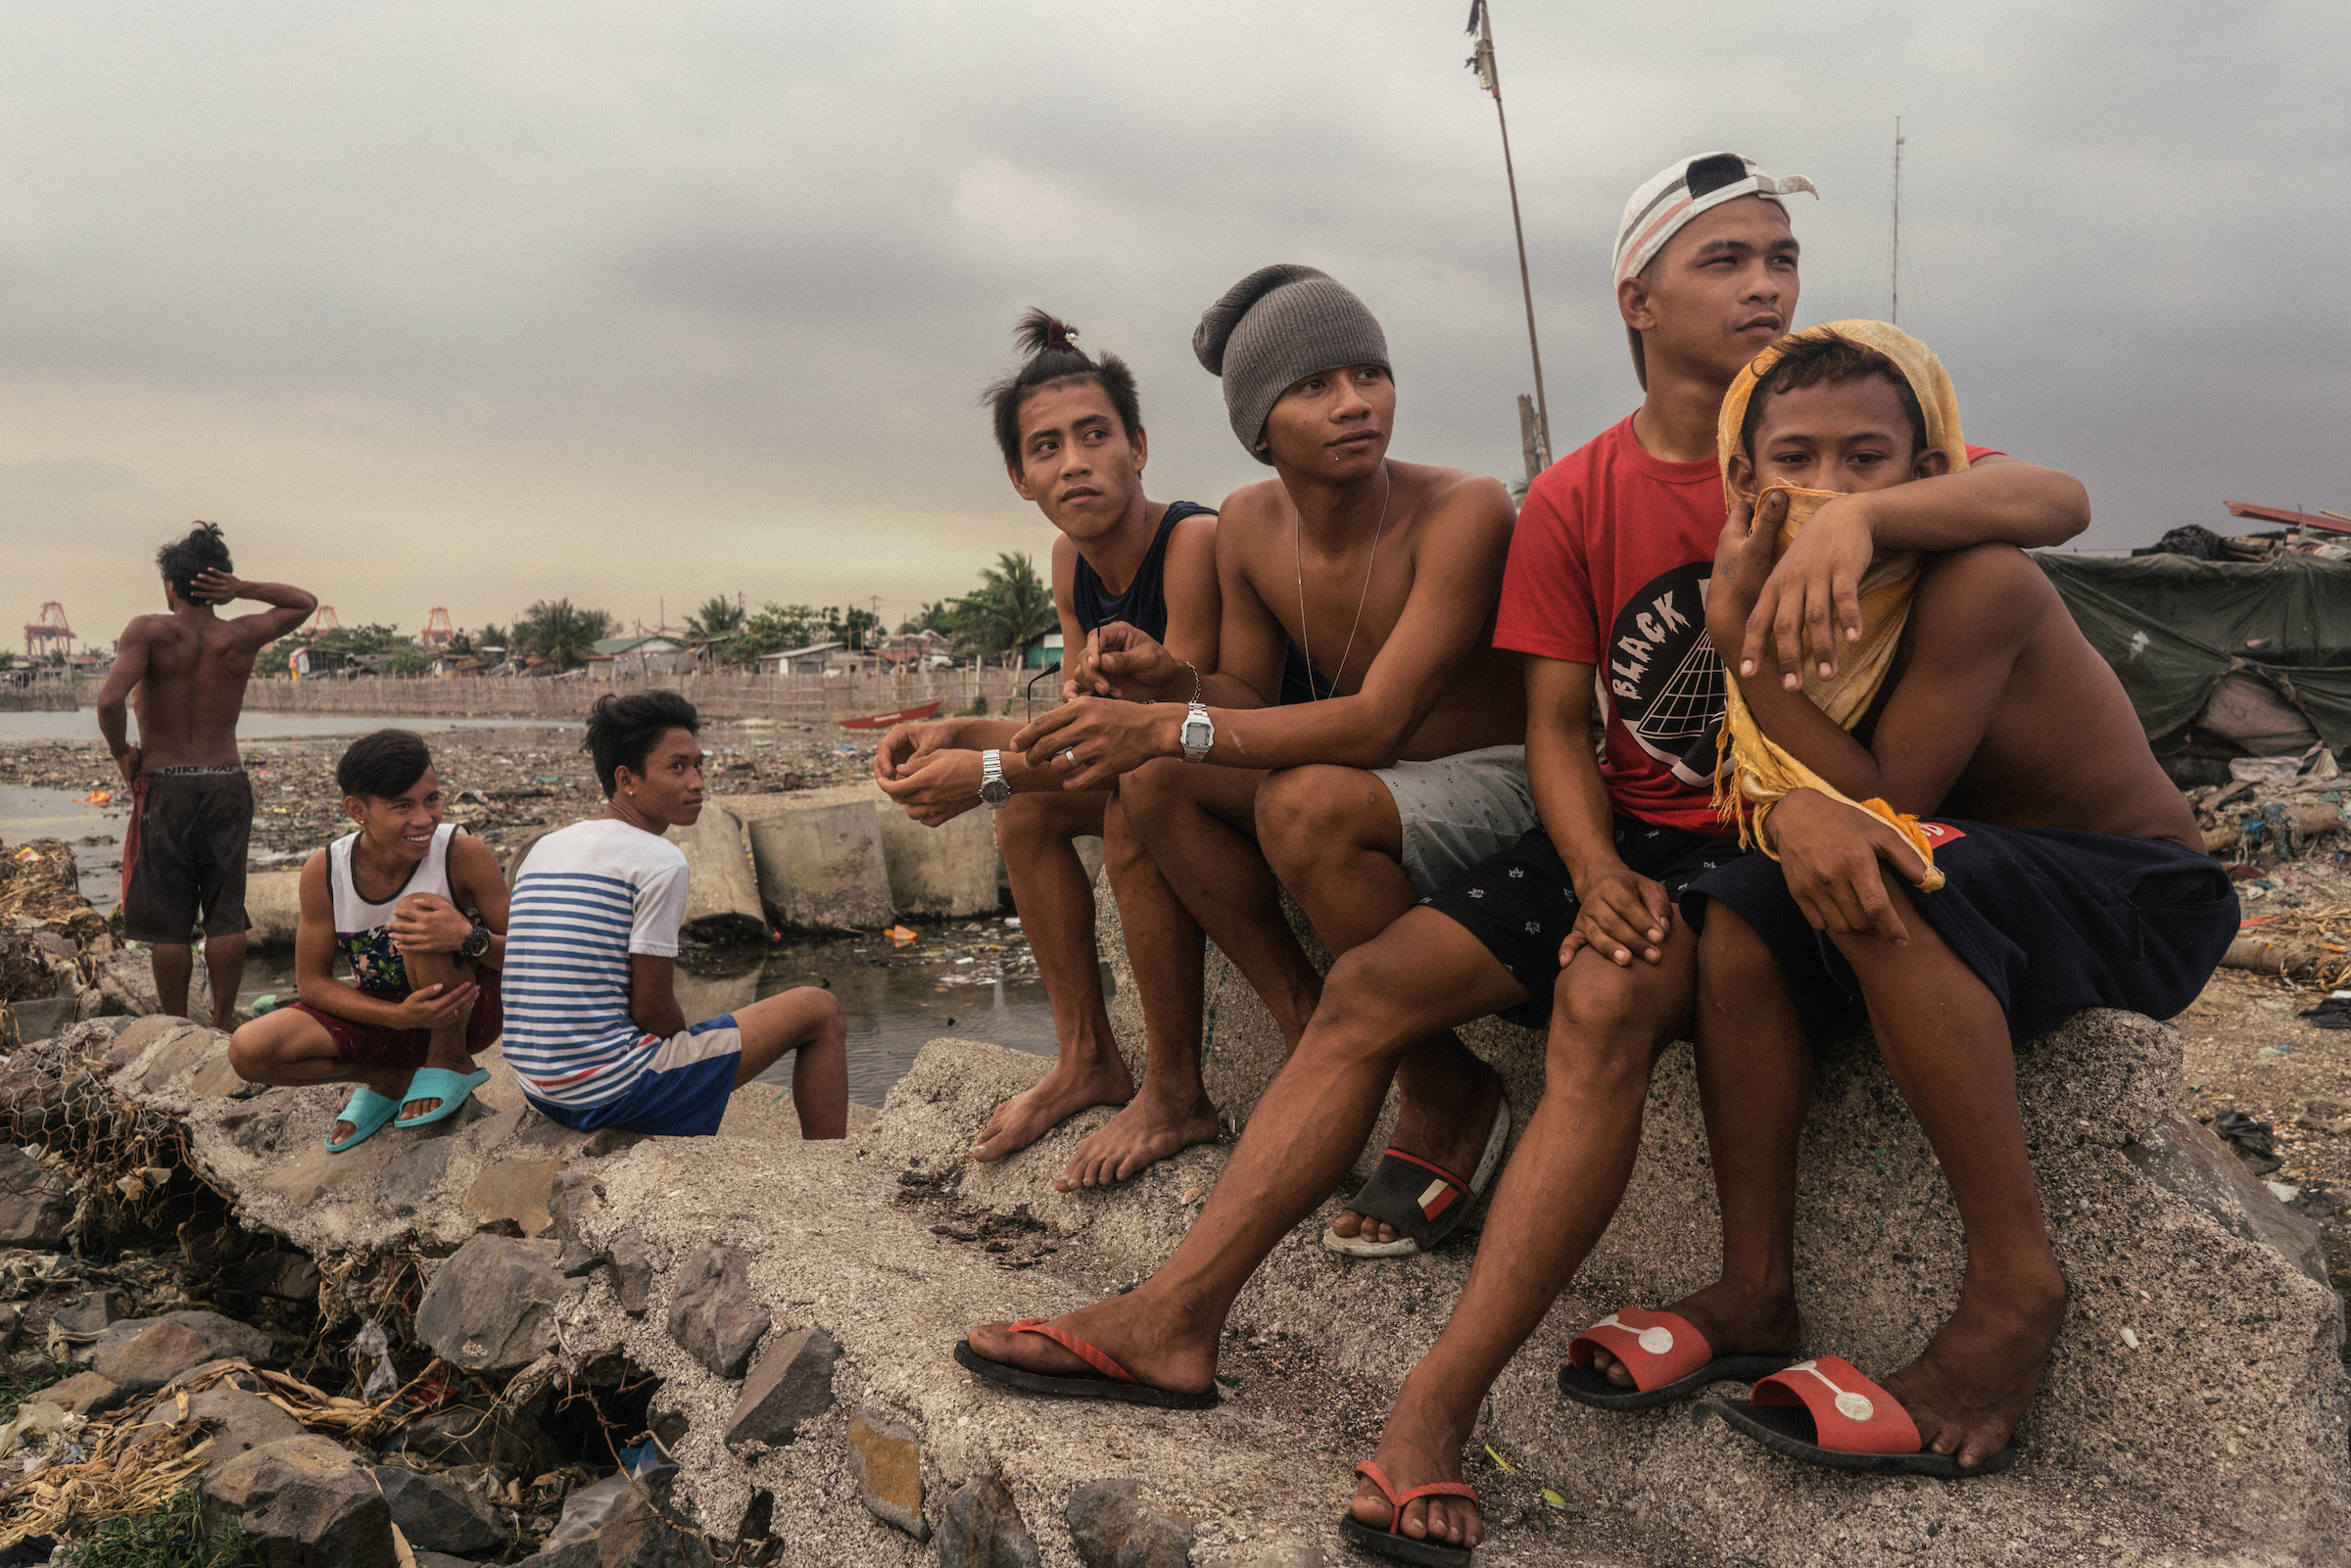 A scene from the Baseco community in Tondo, which has one of the highest concentrations of urban poor settlers in Metro Manila, Philippines.